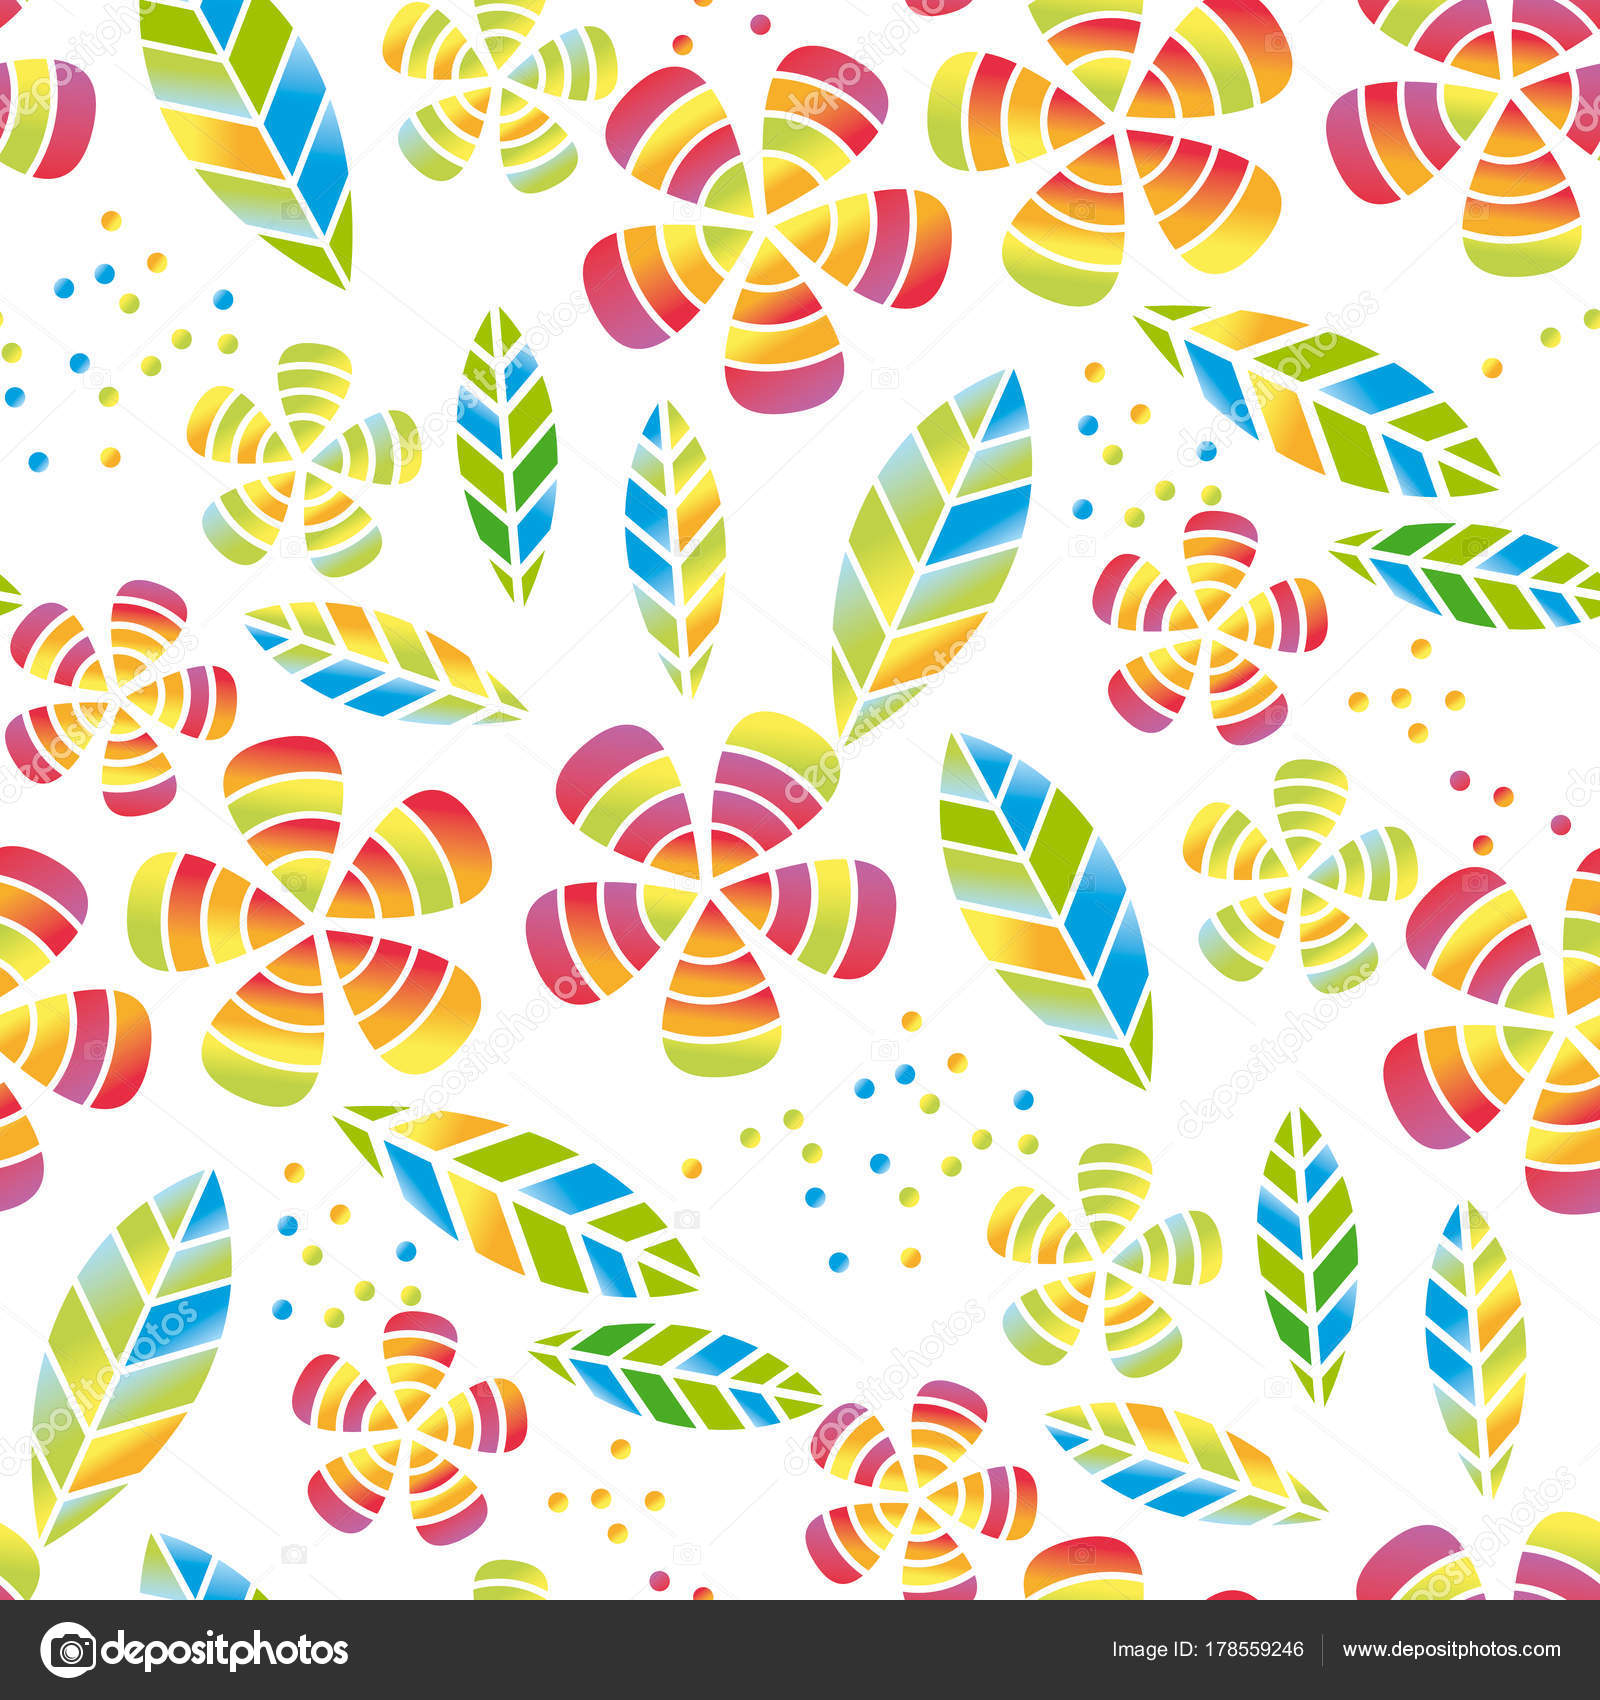 Tropical Flowers And Leaves Simple And Decorative Vector Seamless